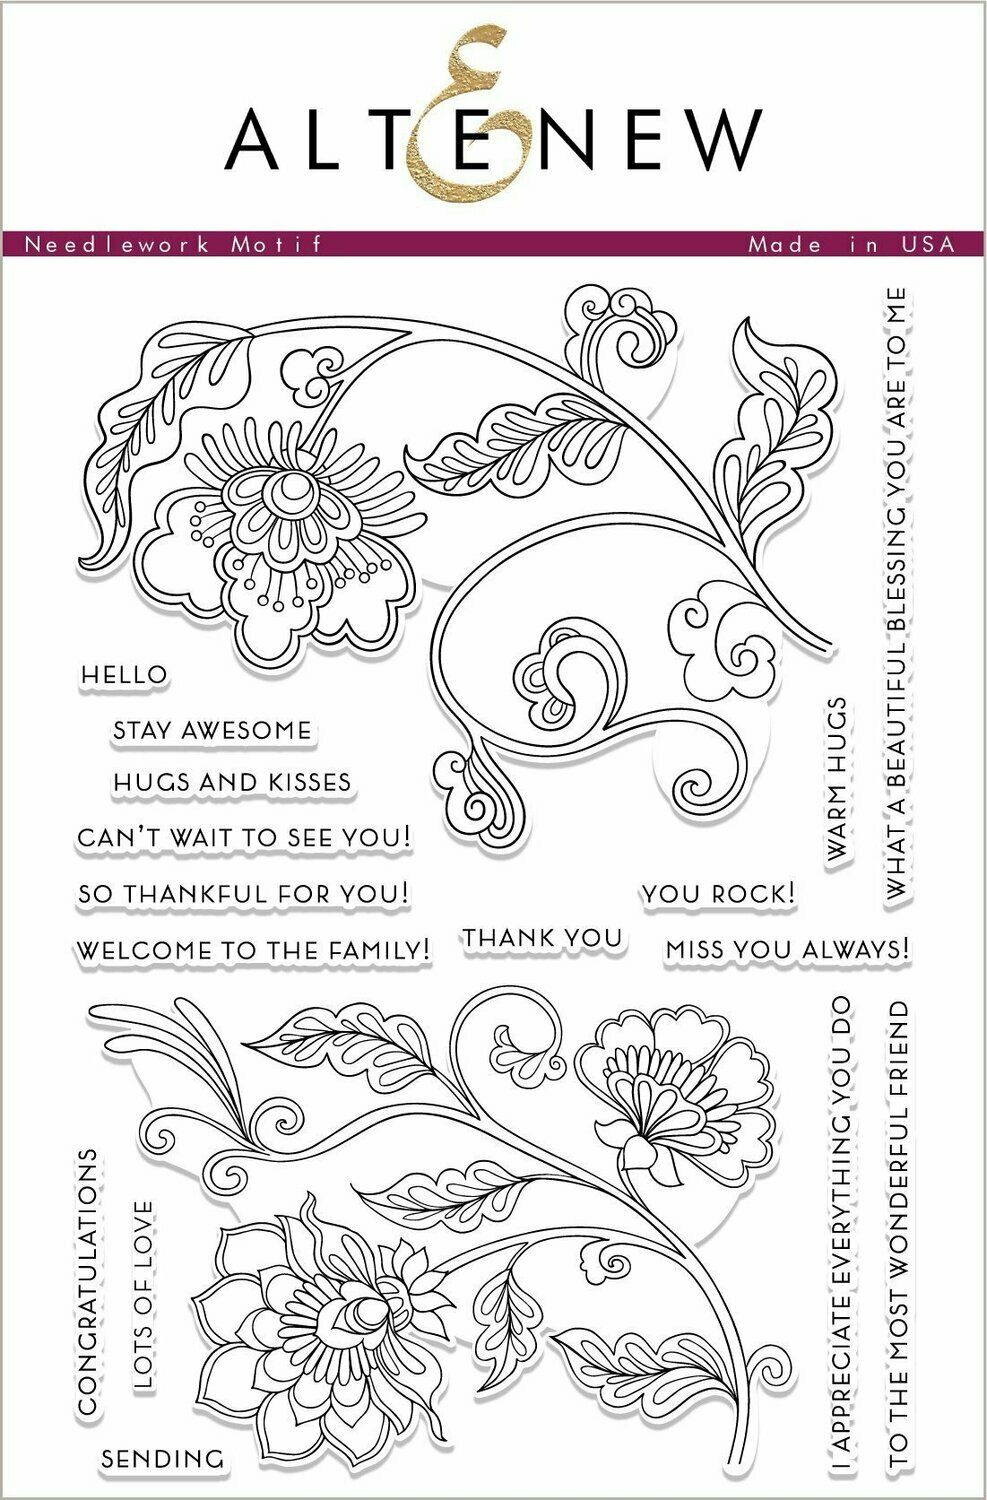 Altenew NEEDLEWORK MOTIF Clear Stamp Set